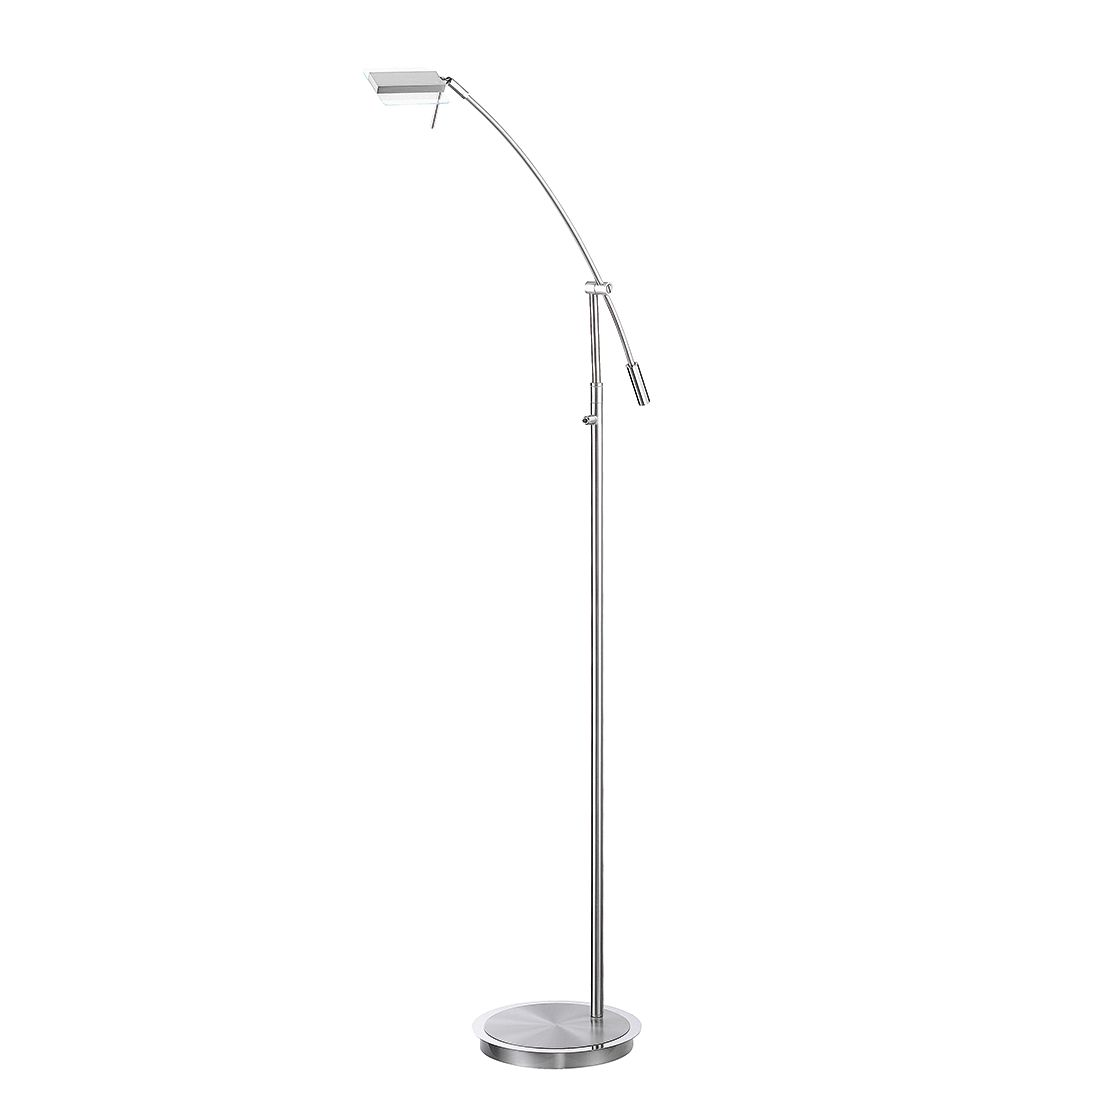 EEK A+, Lampe de table Kamminke - Nickel mat / Métal chromé 1 ampoule, Fischer Leuchten